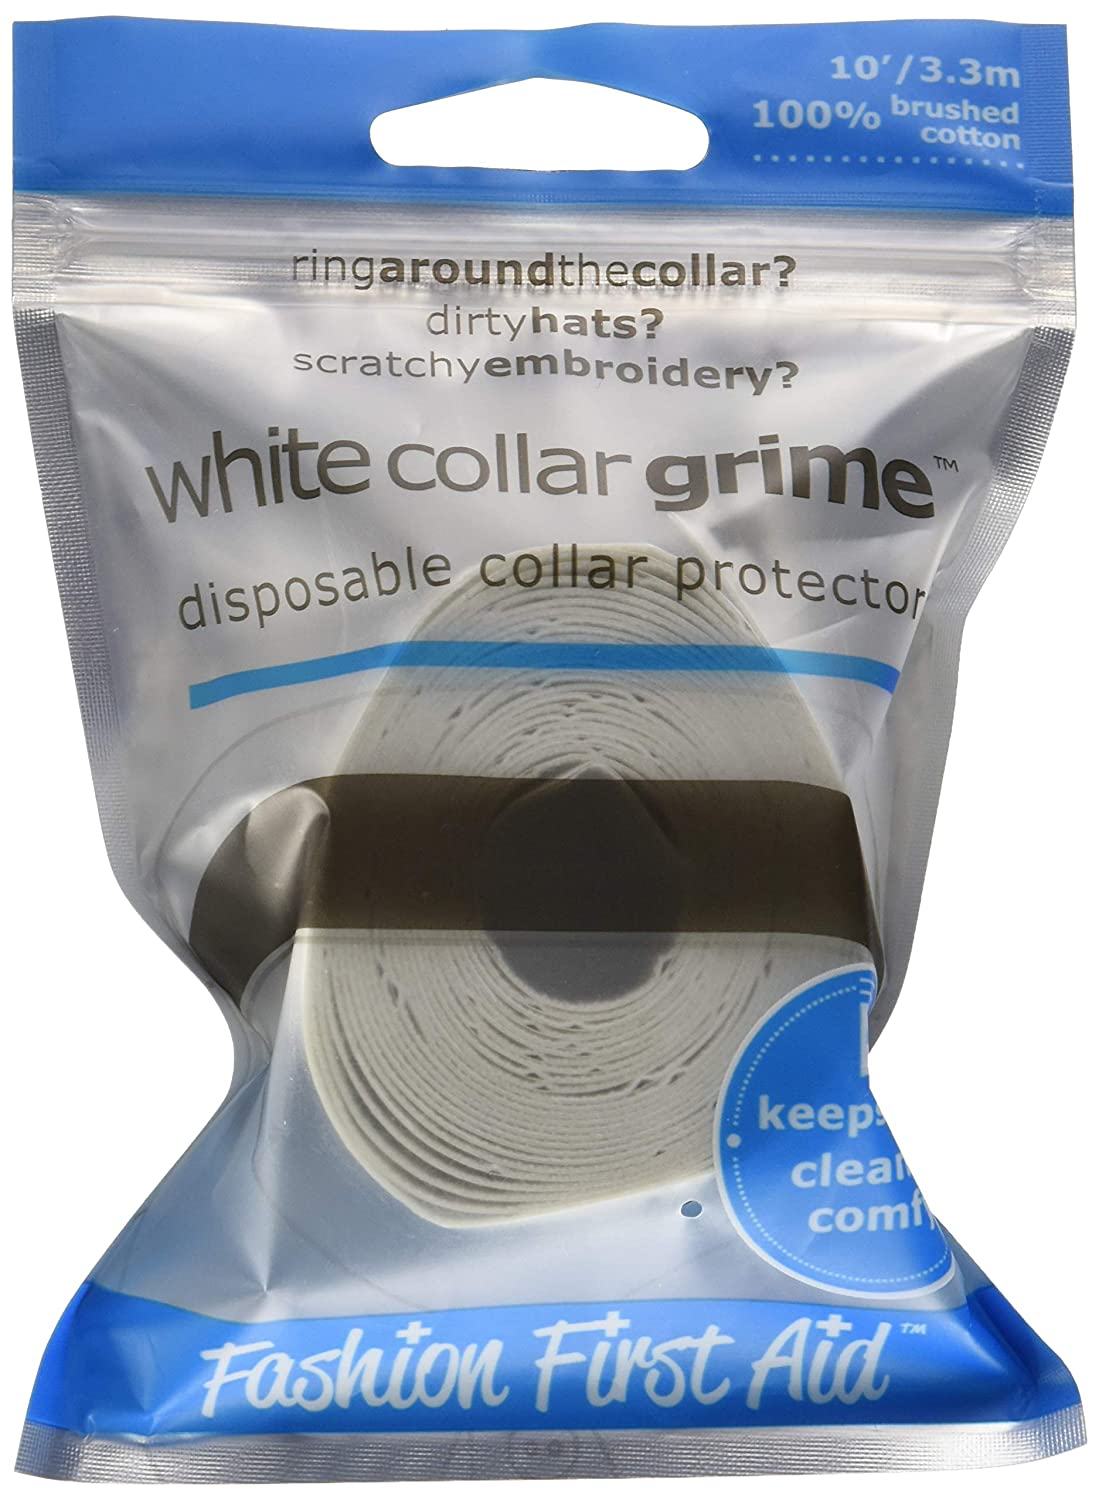 White Collar Grime: Disposable Collar Protector, White, 10 Ft